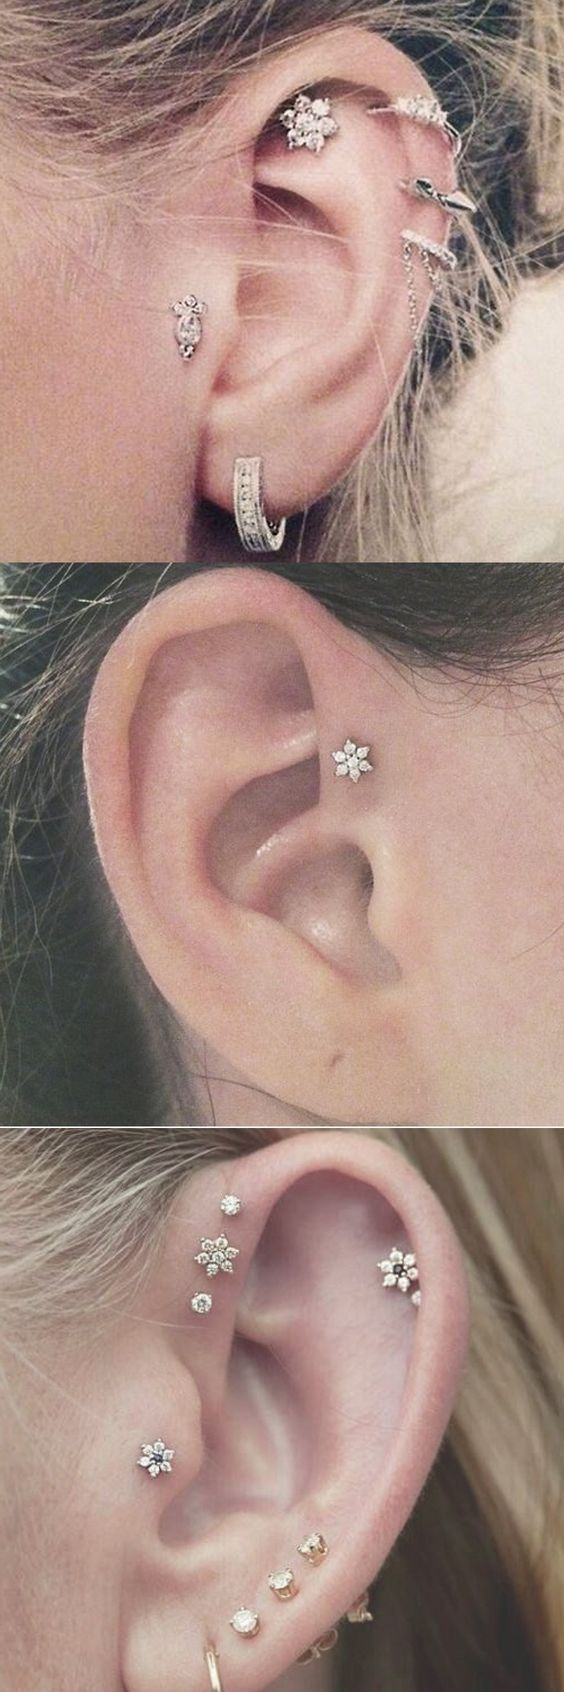 Best 25+ Triple ear piercing ideas on Pinterest | Ear ...